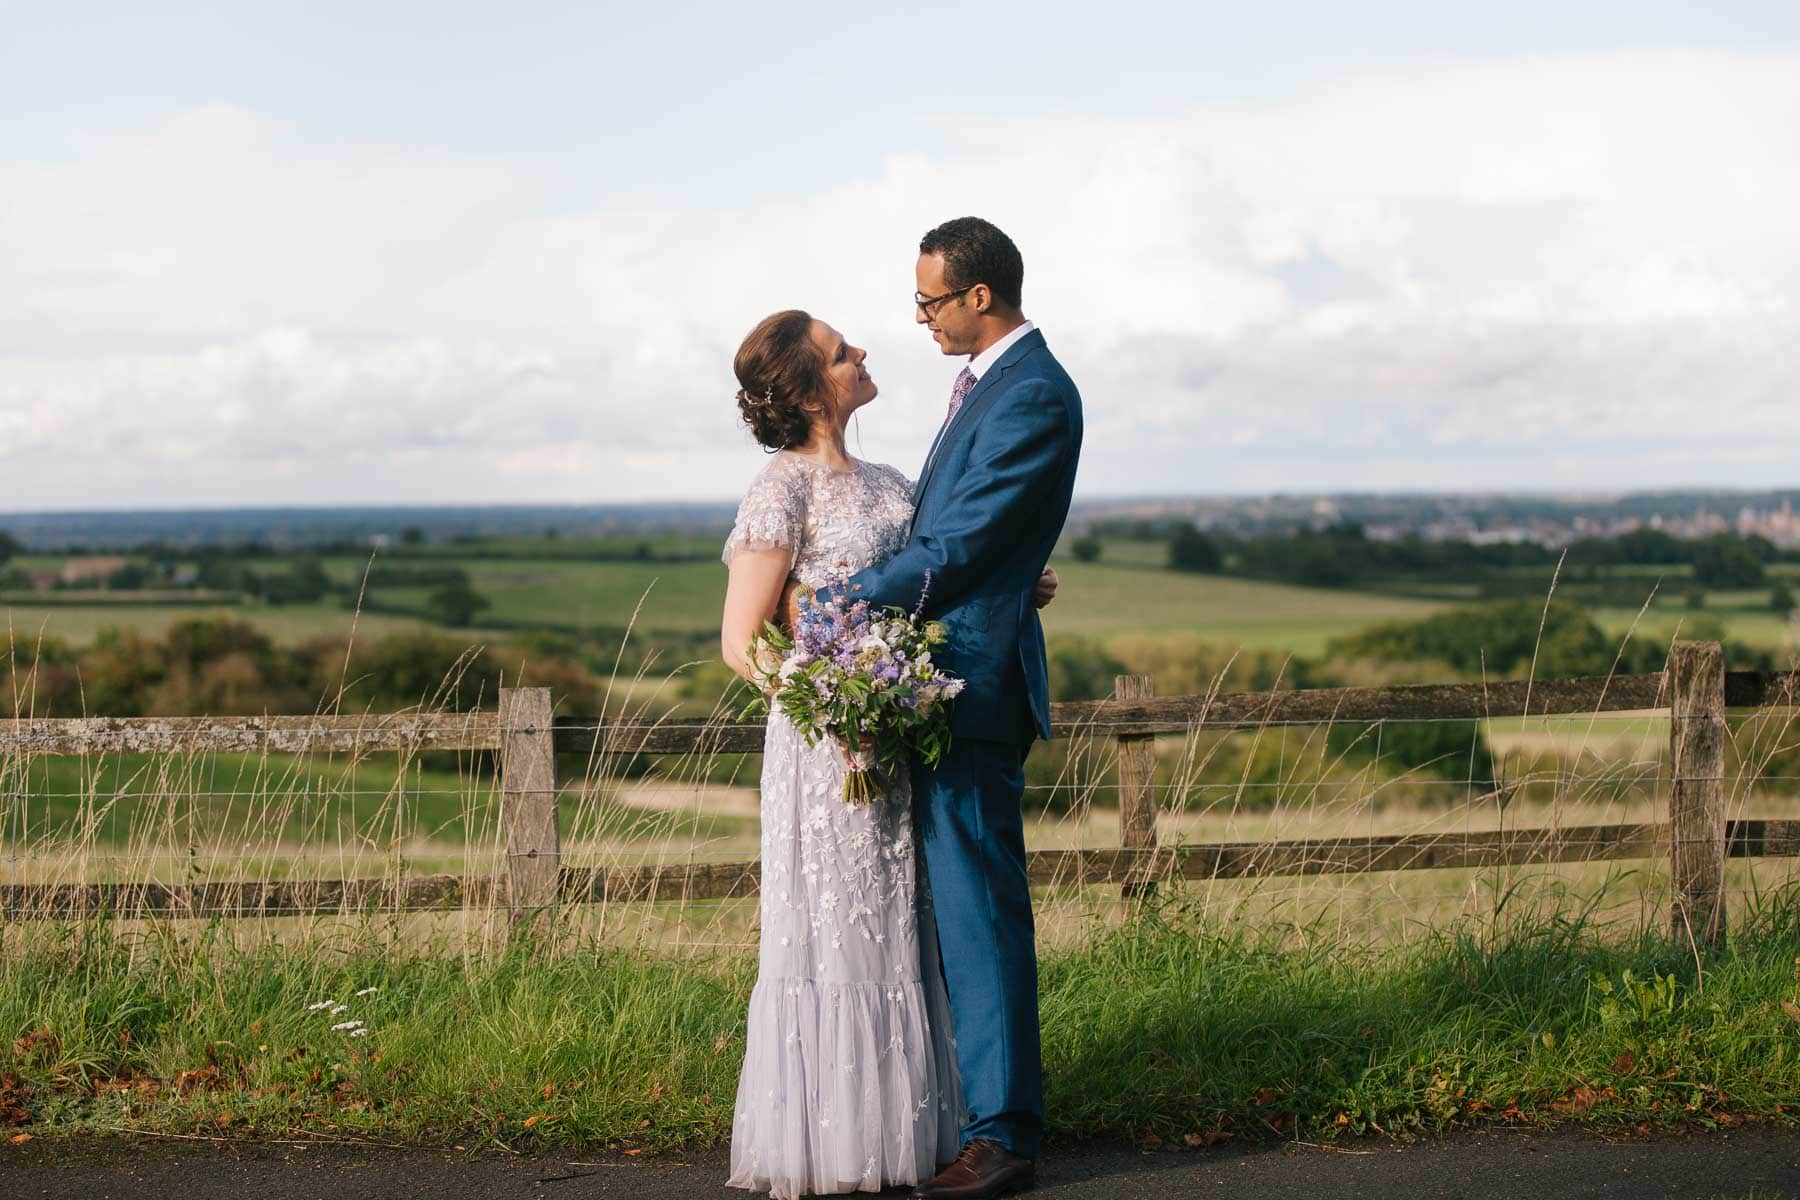 Bride and groom embrace next to fence overlooking Oxfordshire countryside